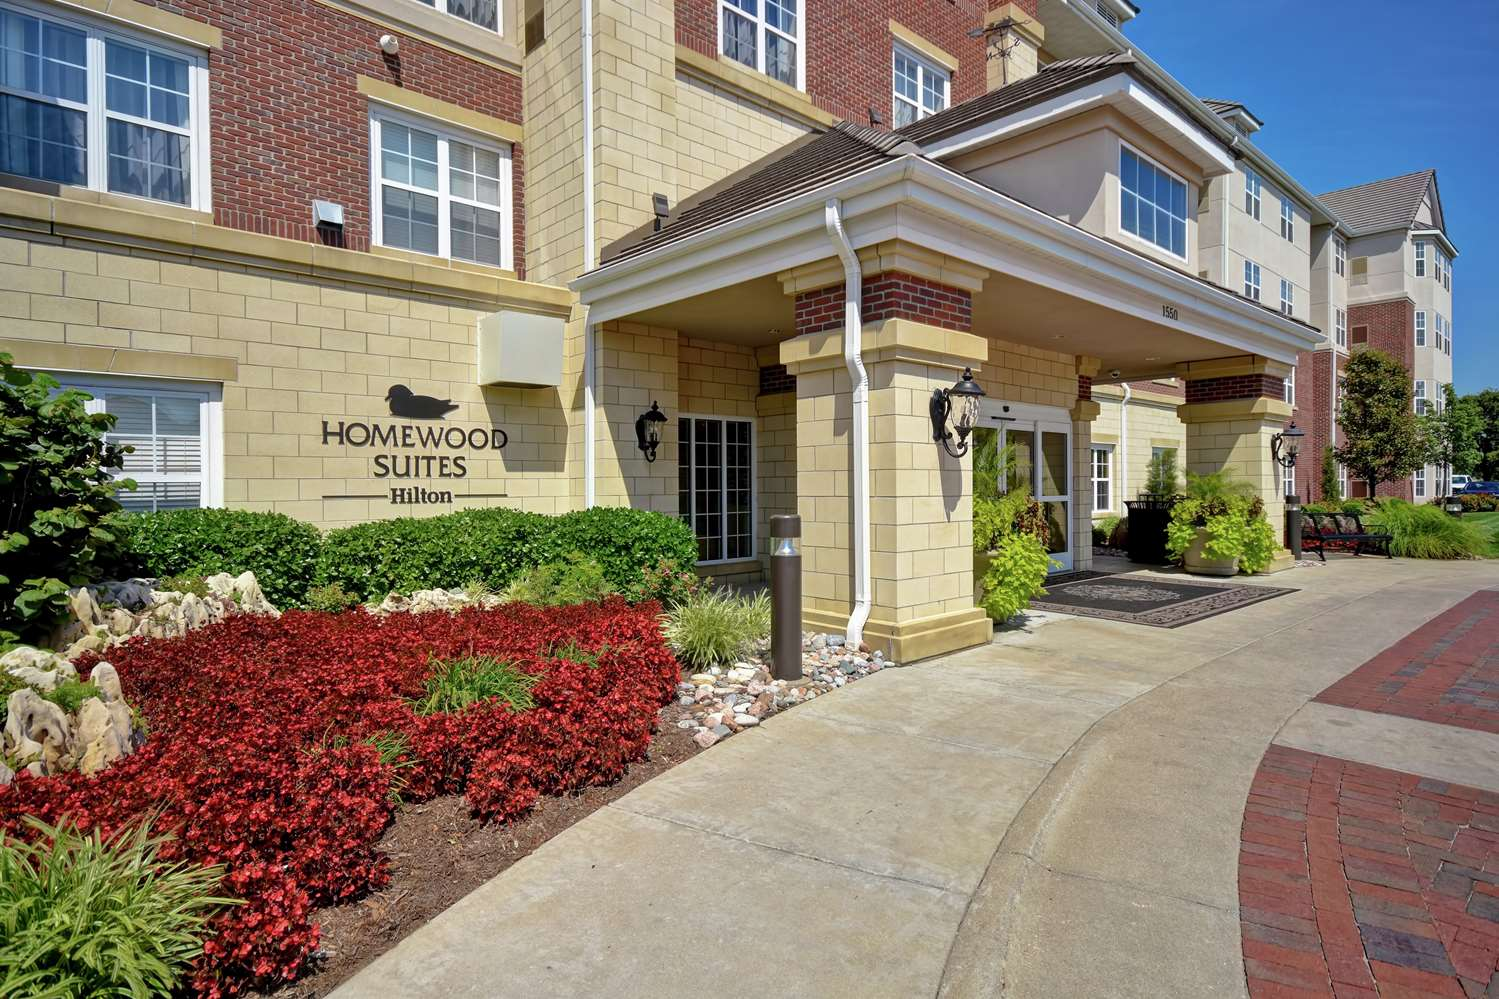 Homewood Suites by Hilton * The Waterfront